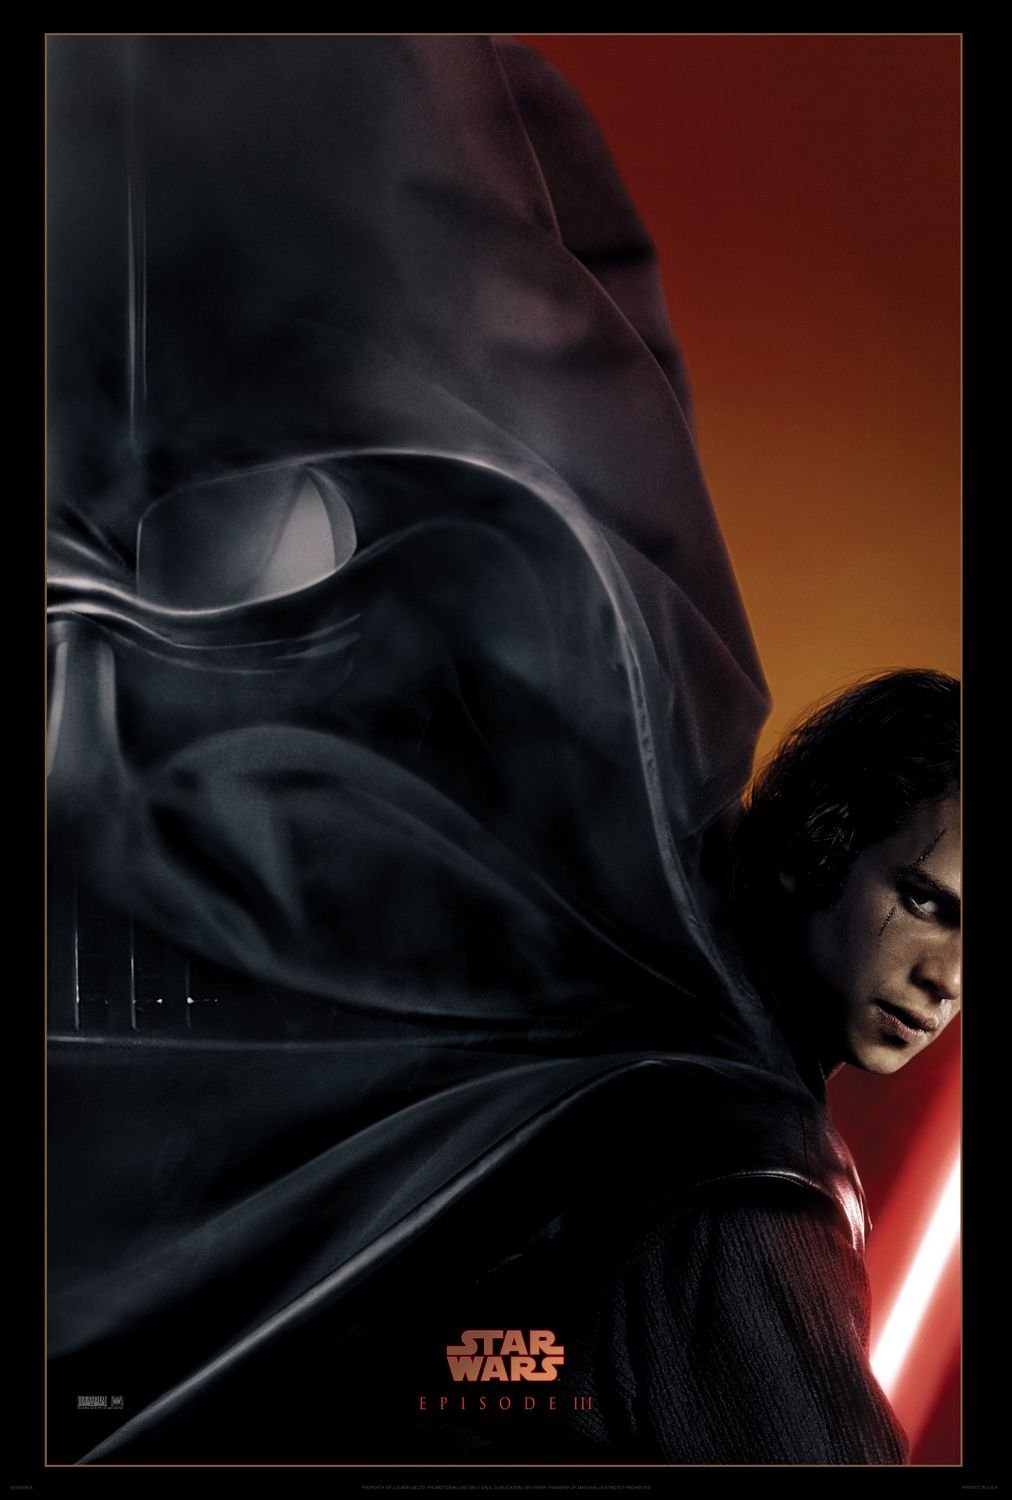 Star Wars: Episode III - Revenge of the Sith (2005) poster ...